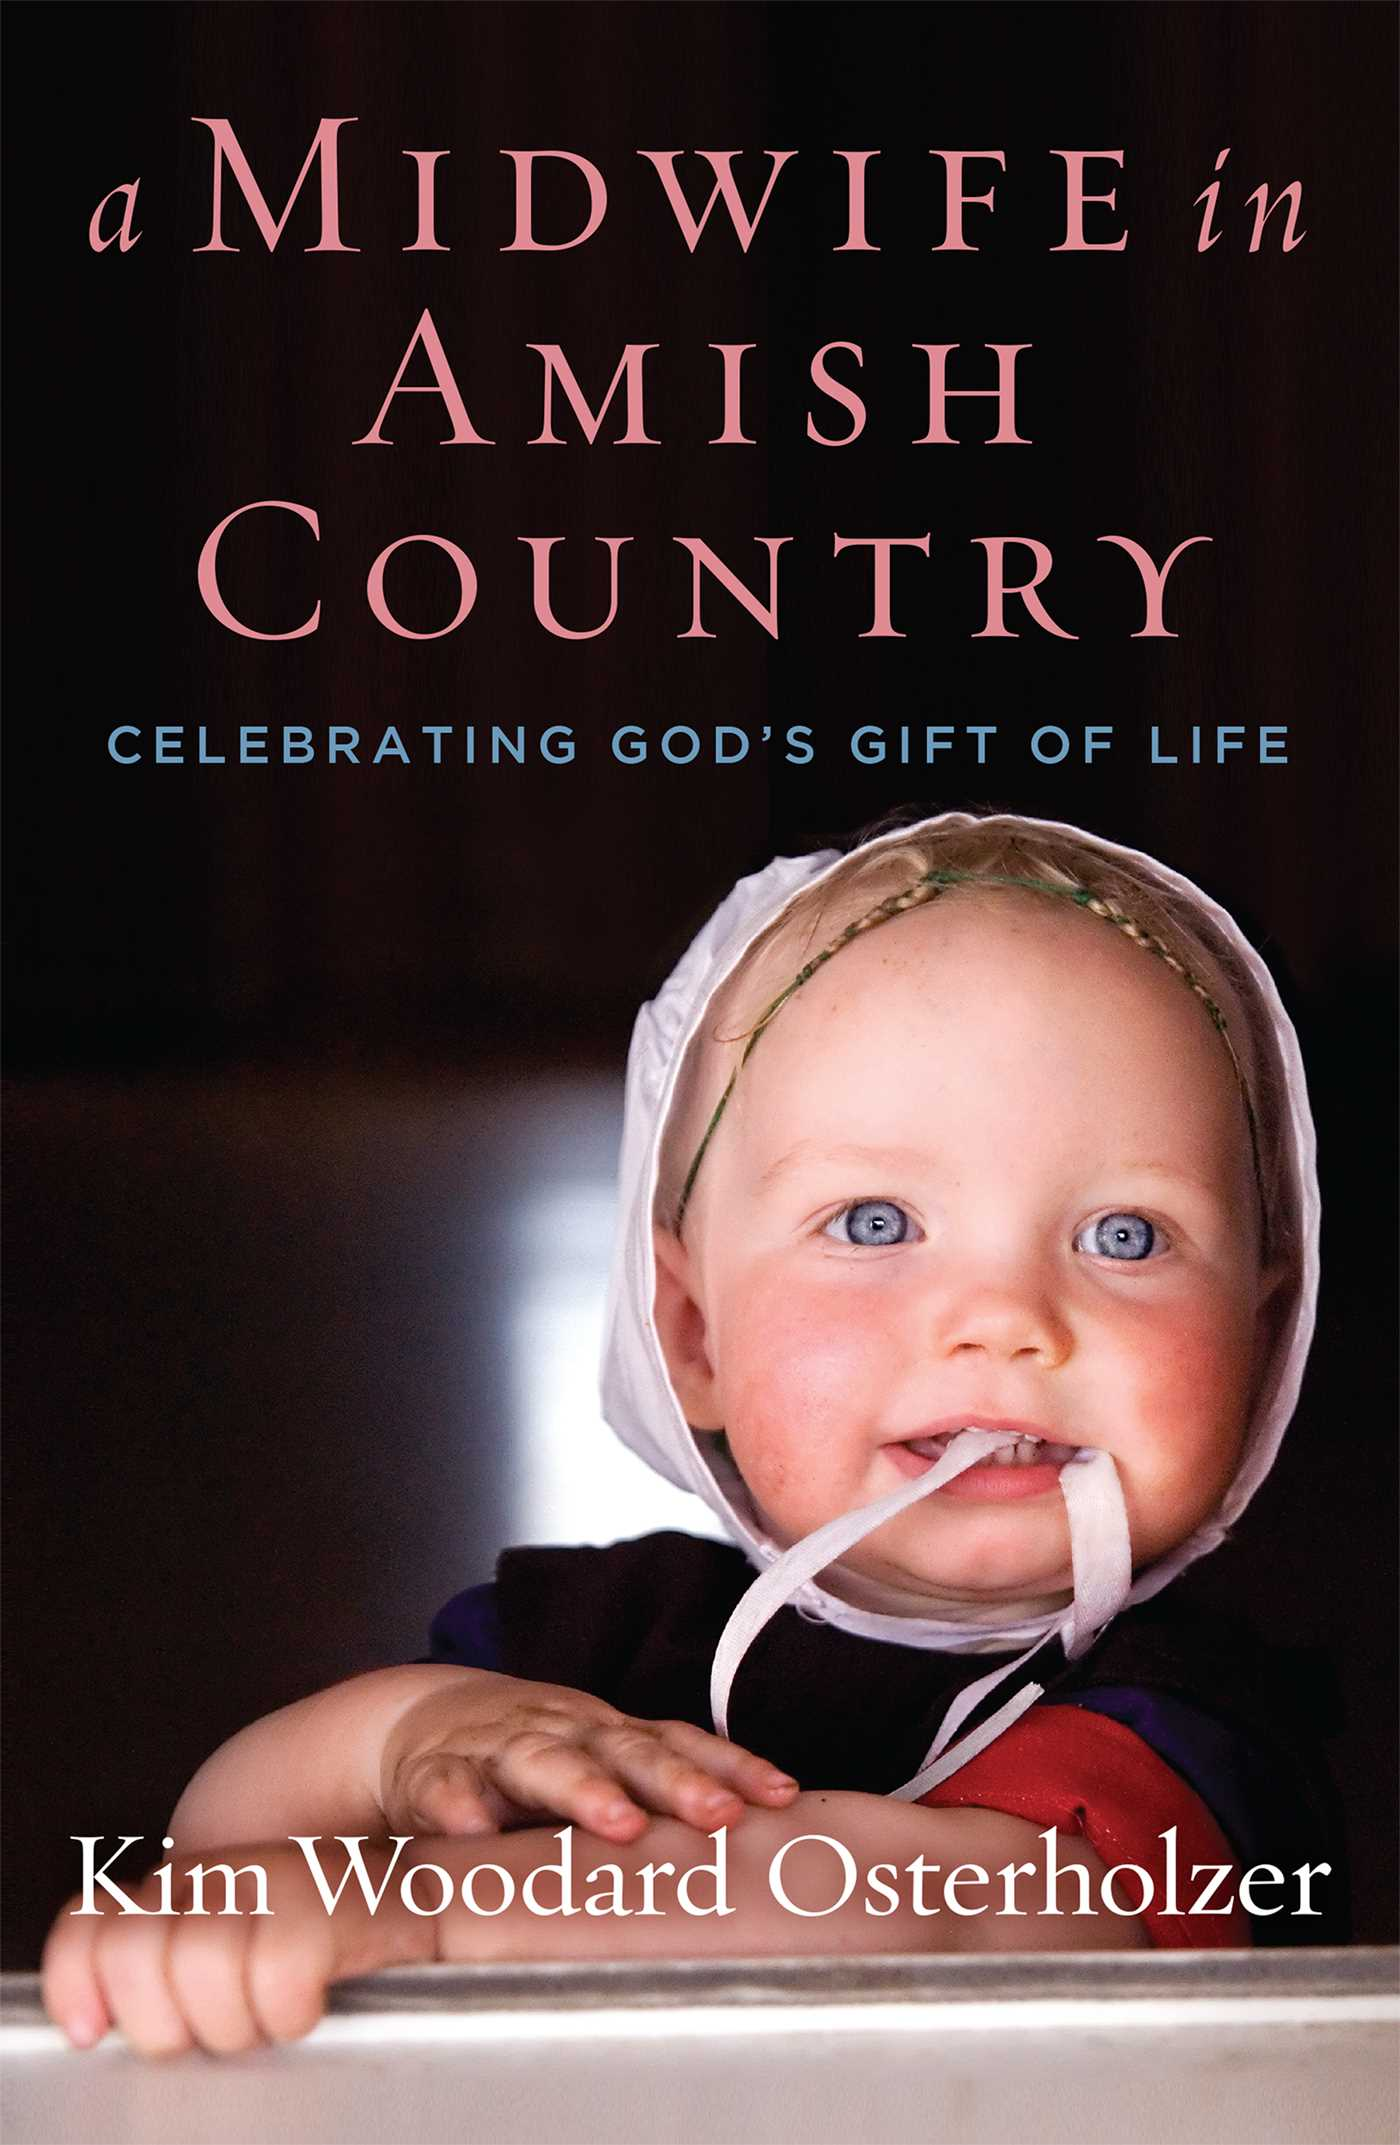 A midwife in amish country 9781621577553 hr